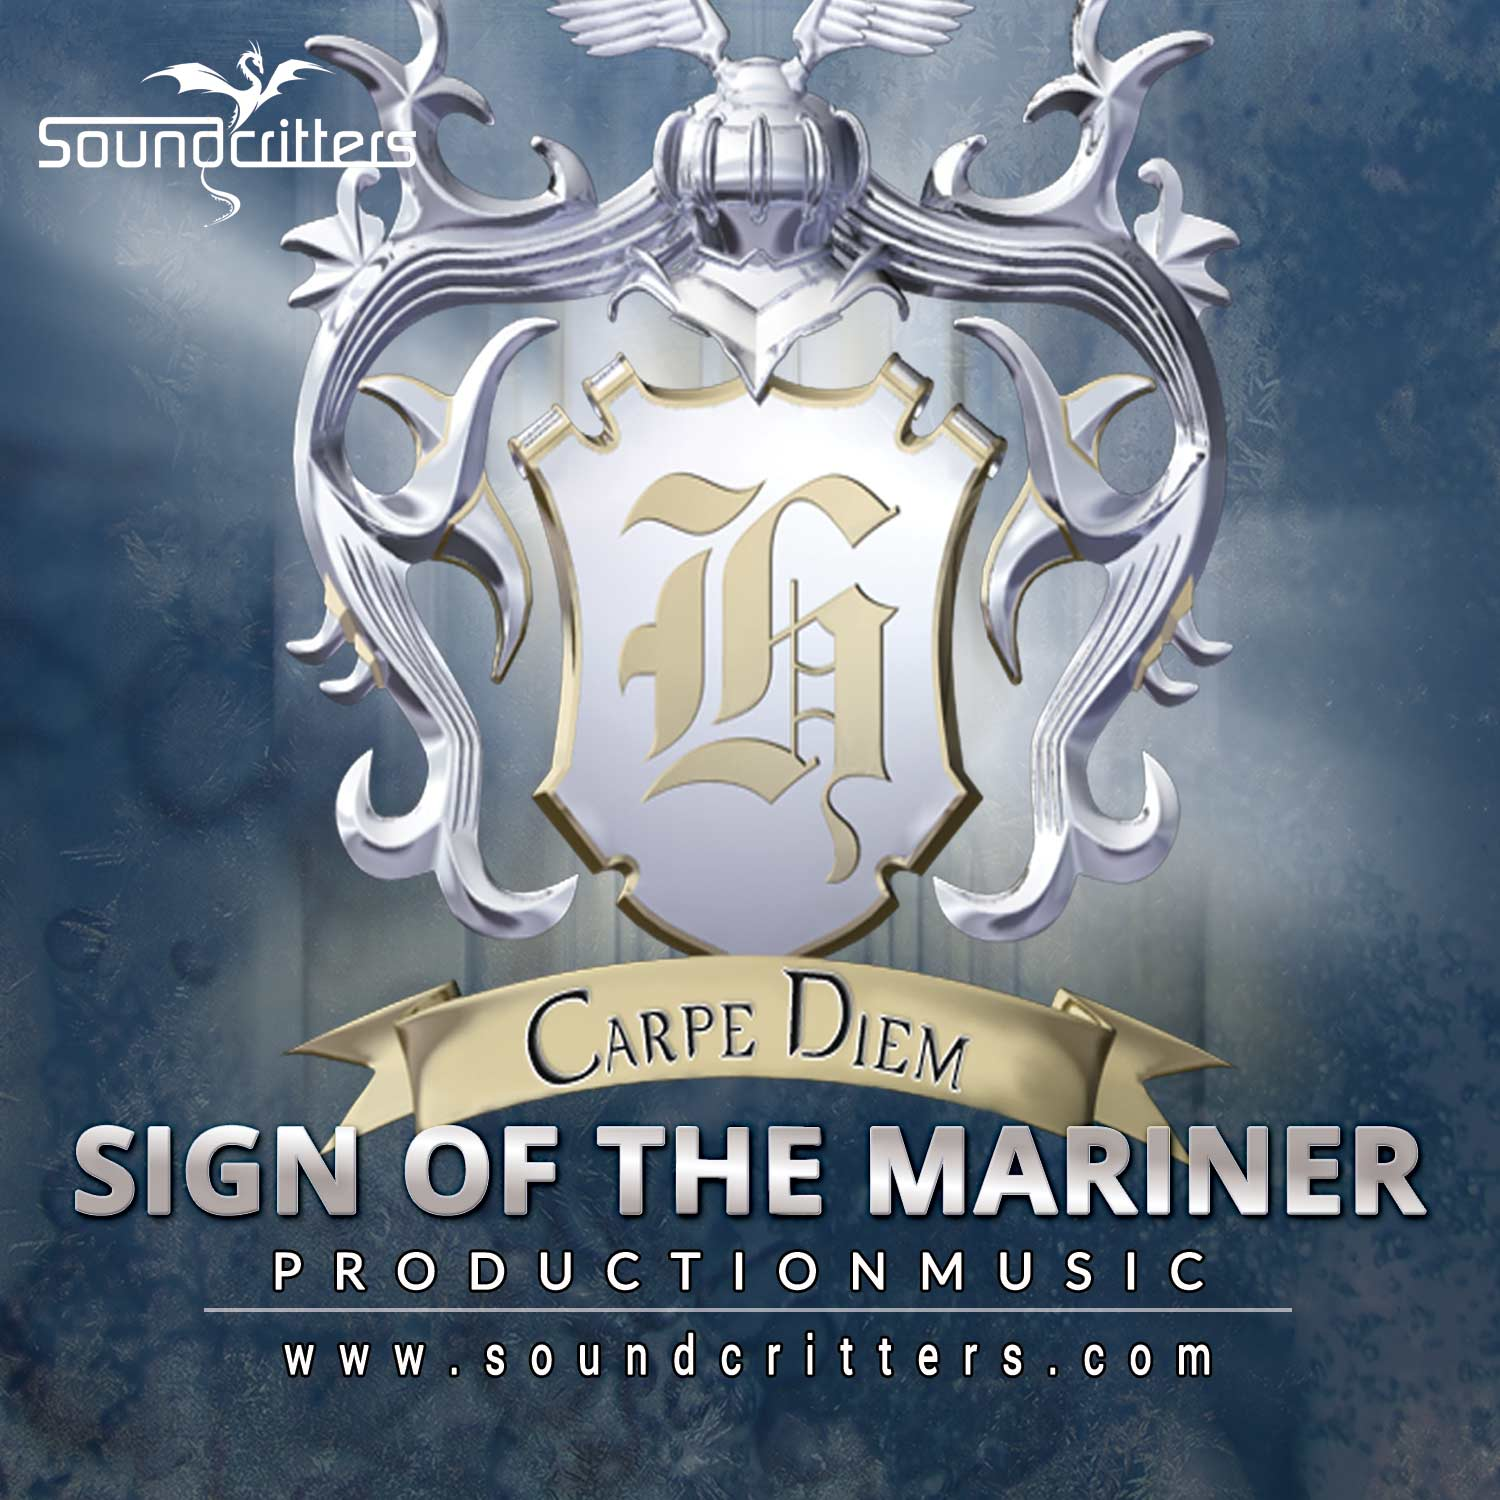 Sign of the Mariner